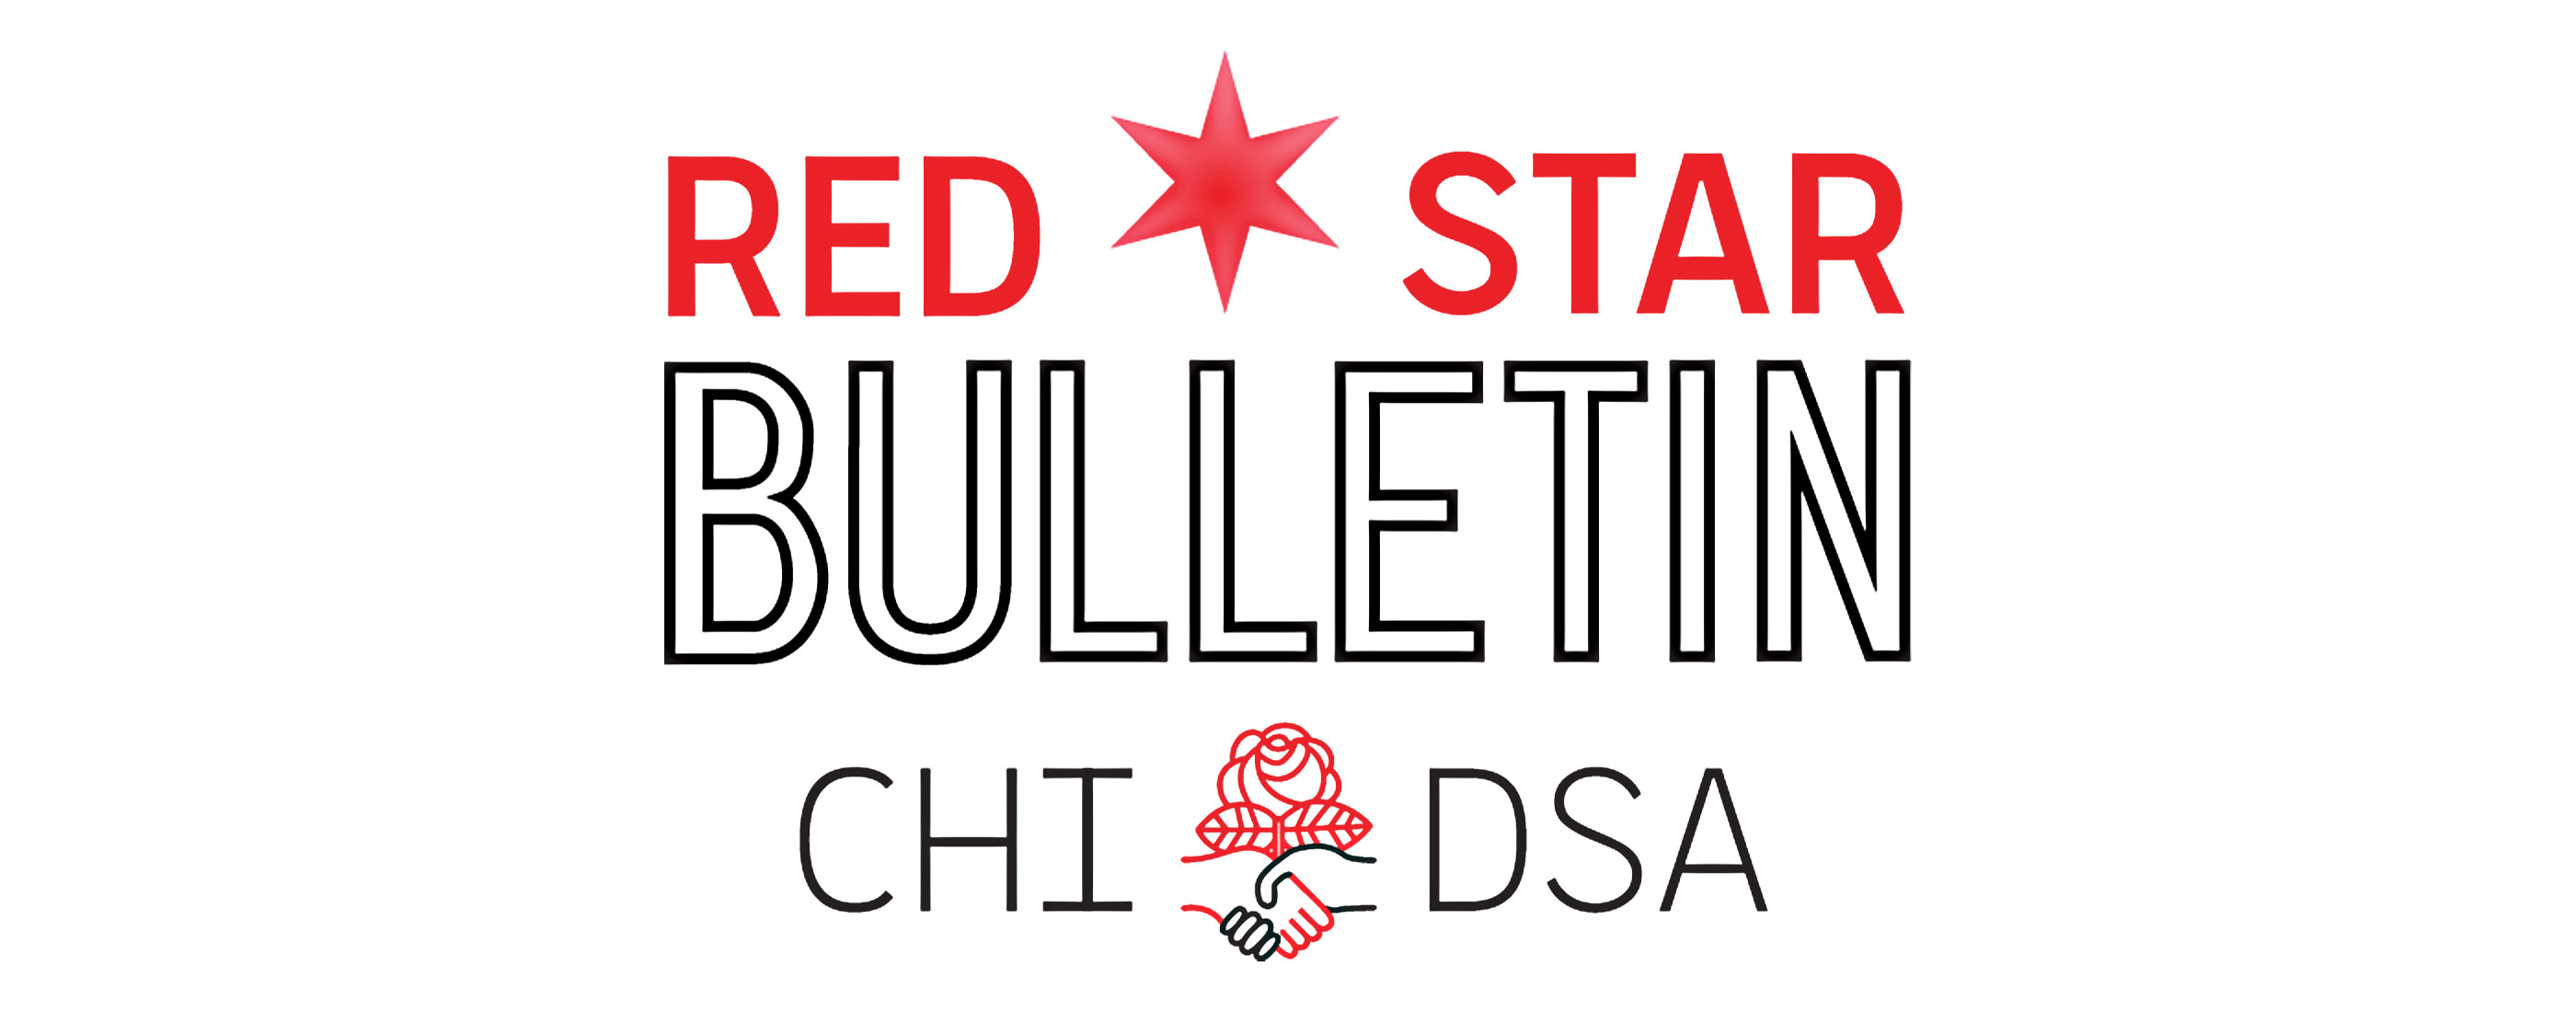 Red Star Bulletin: June 12